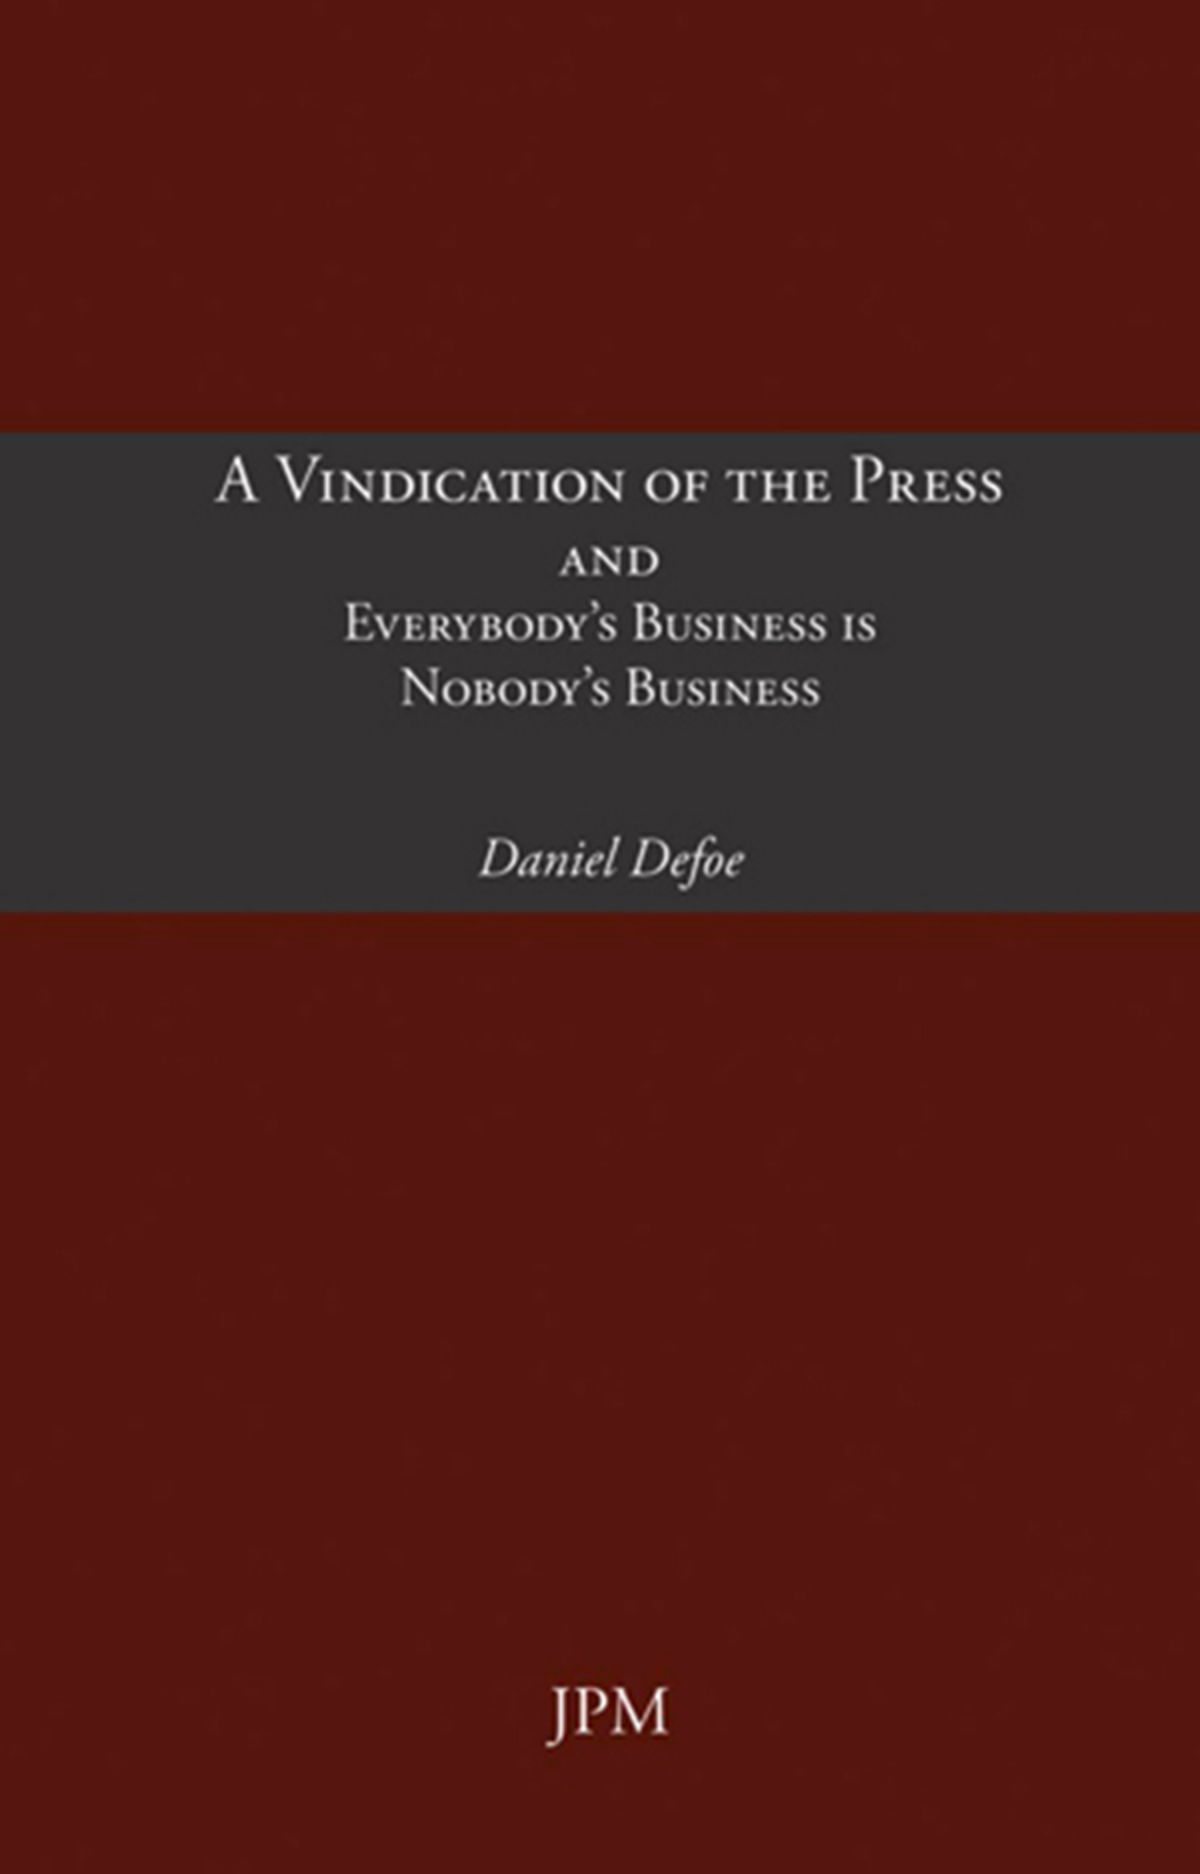 A Vindication of the Press and Everybody's Business is Nobody's Business